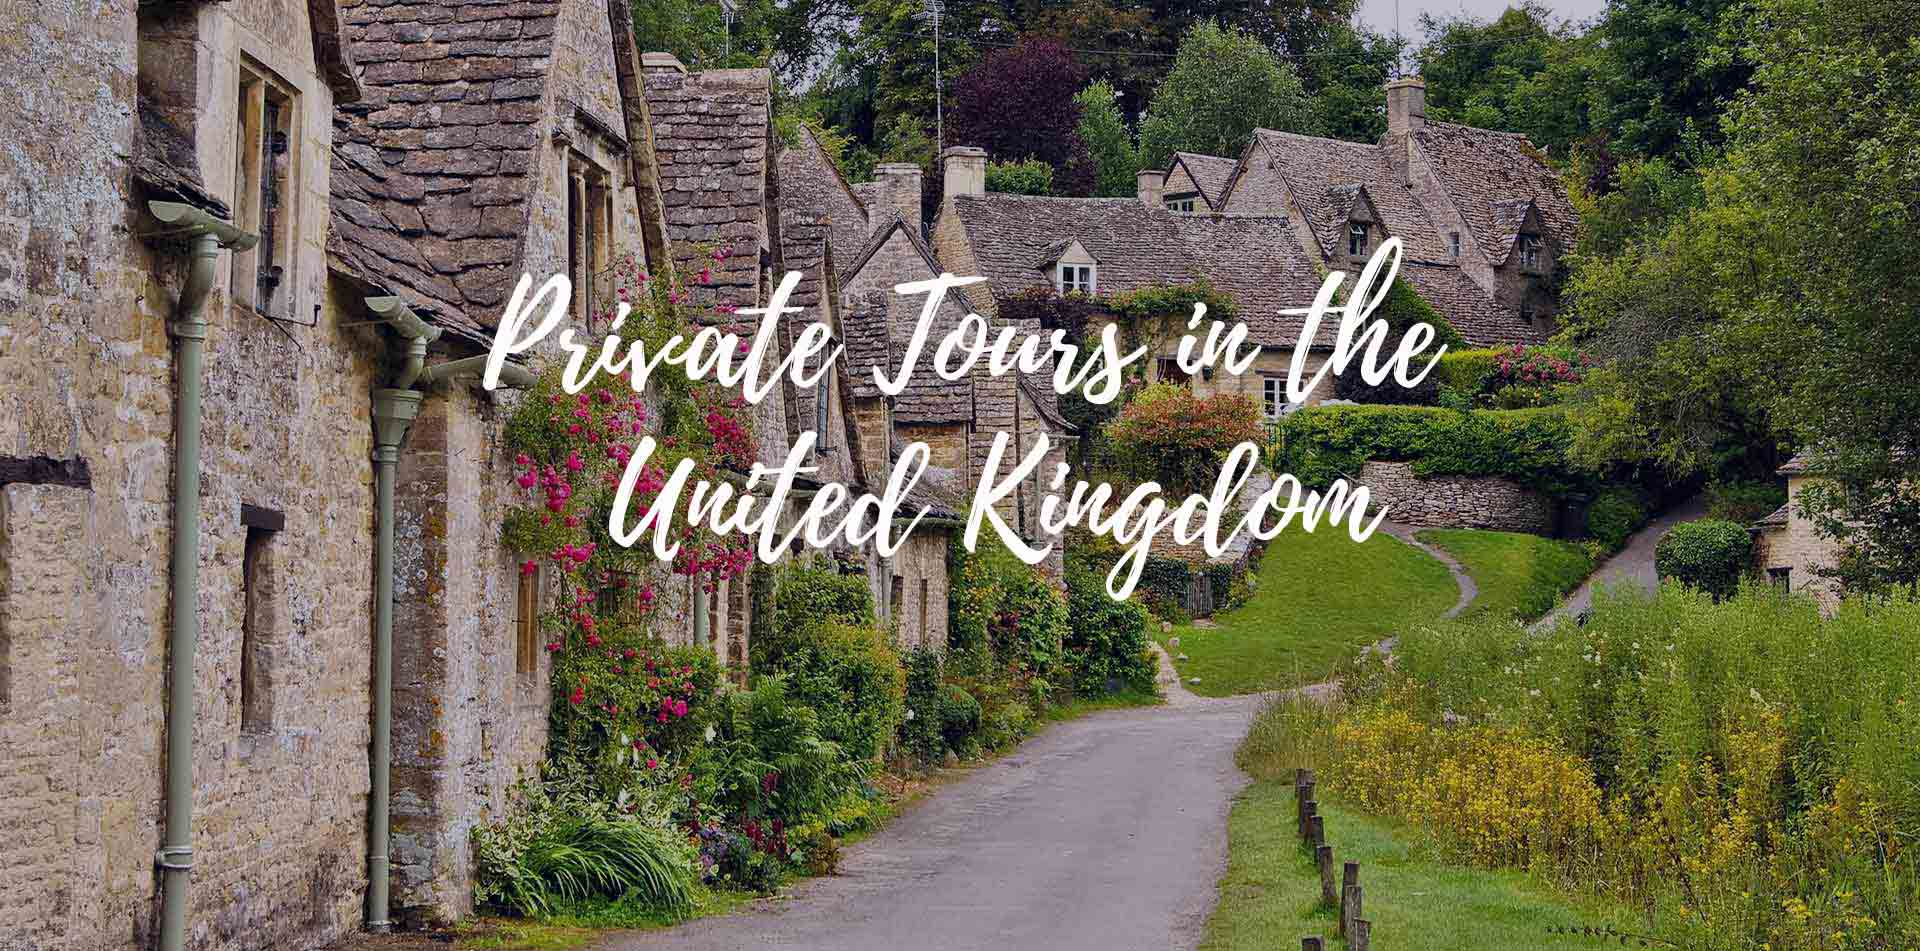 Europe private tours in United Kingdom England Cotswolds historic Arlington Row stone cottages - luxury vacation destinations